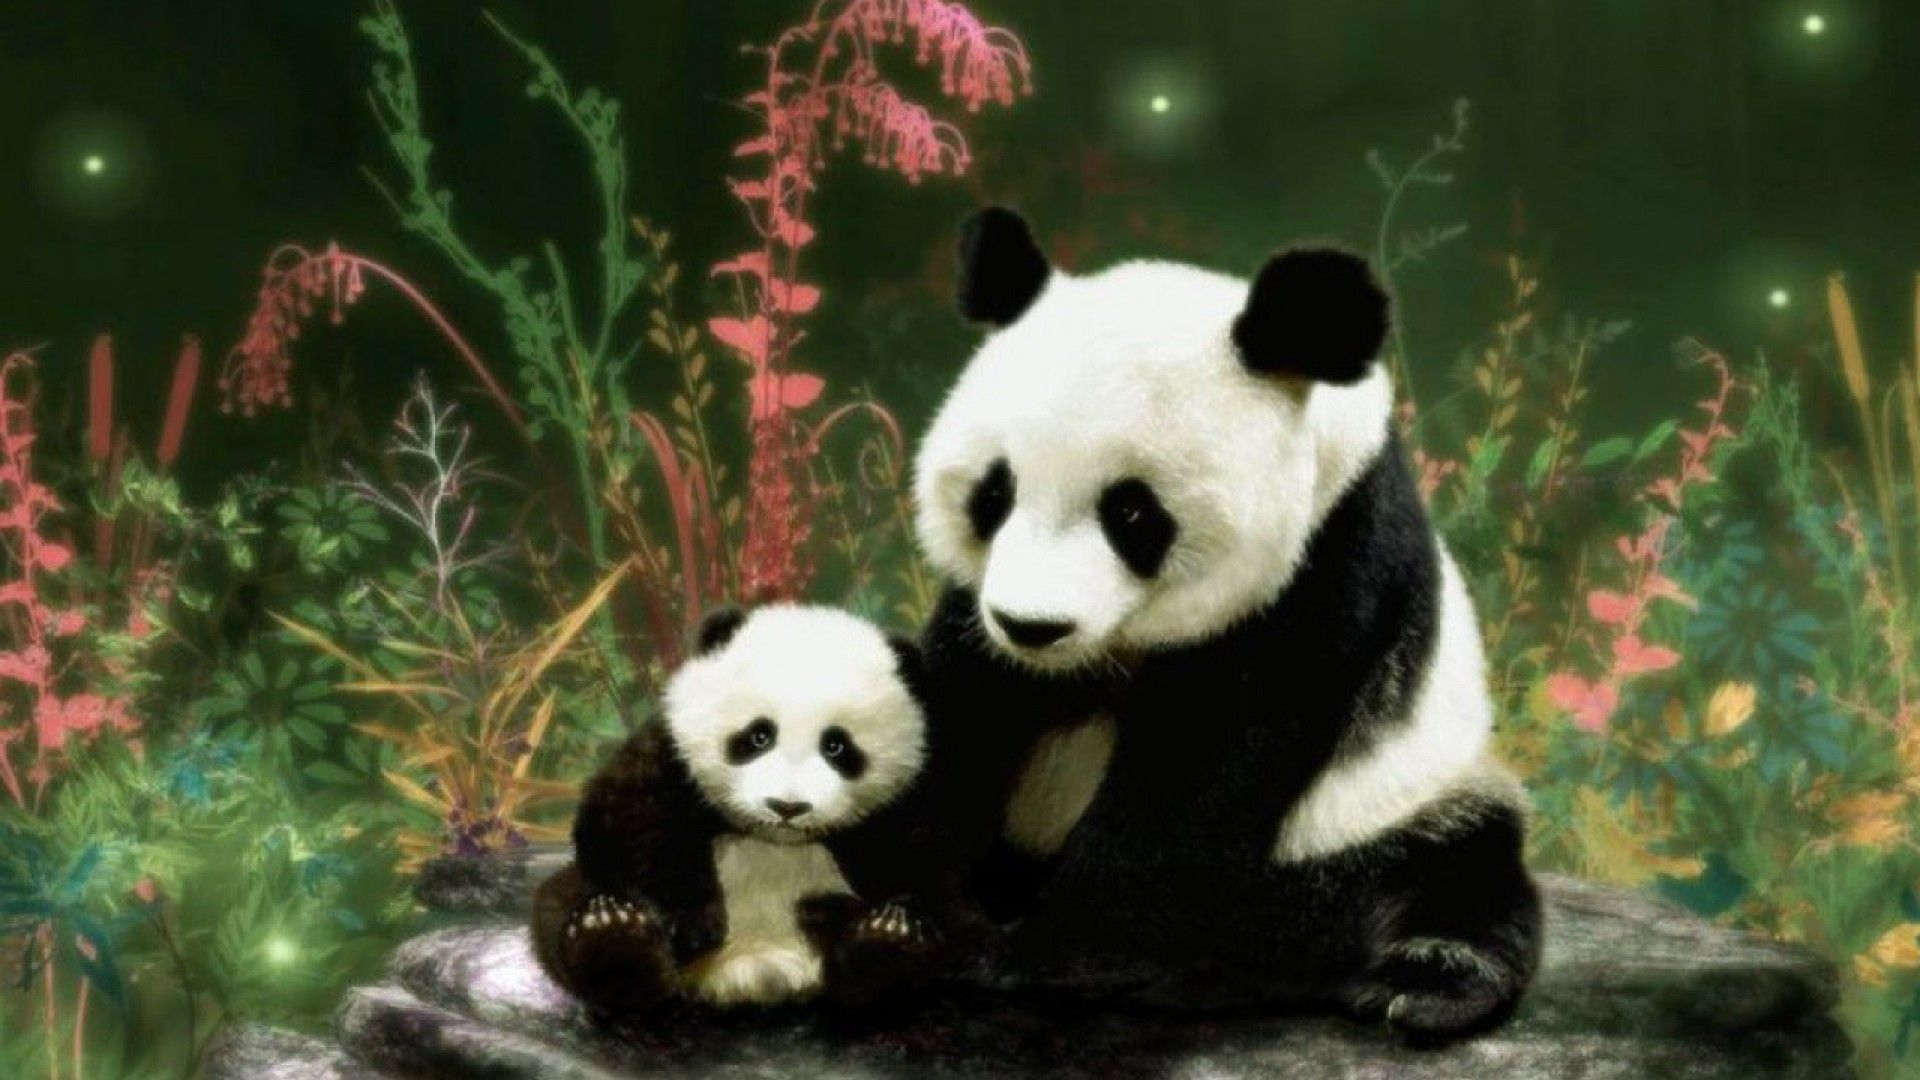 panda bear essay Endangered pandas 2nd period 5/7/13 jenny suwanmanee introduction: help with care, and lets get together to save these panda bears pandas are great symbolic creatures but without your help it could be the end for them.